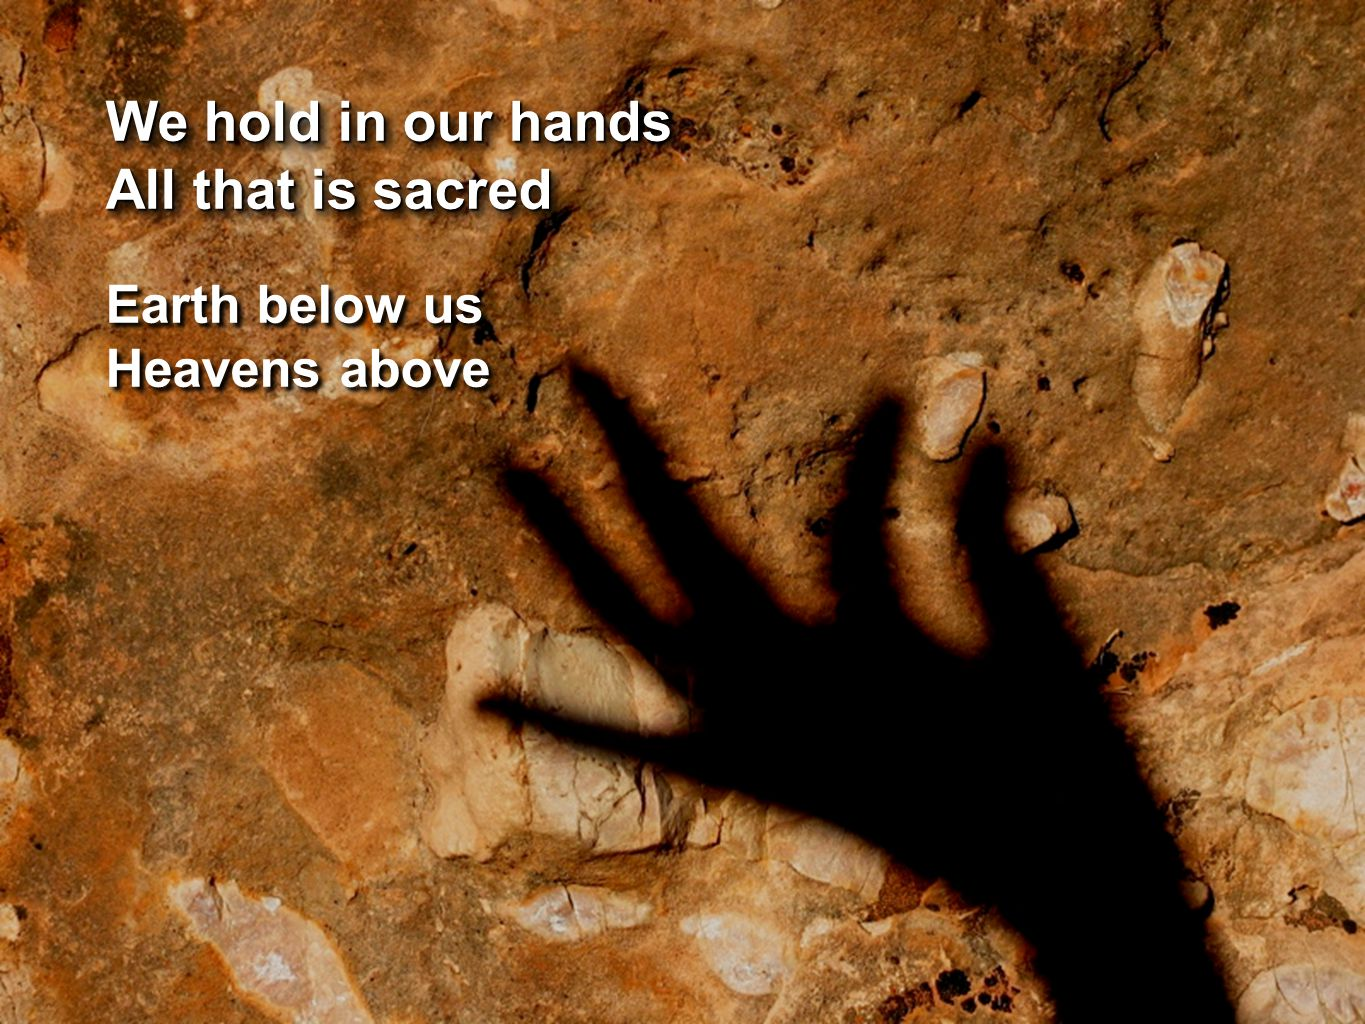 We hold in our hands All that is sacred We hold in our hands All that is sacred Earth below us Heavens above